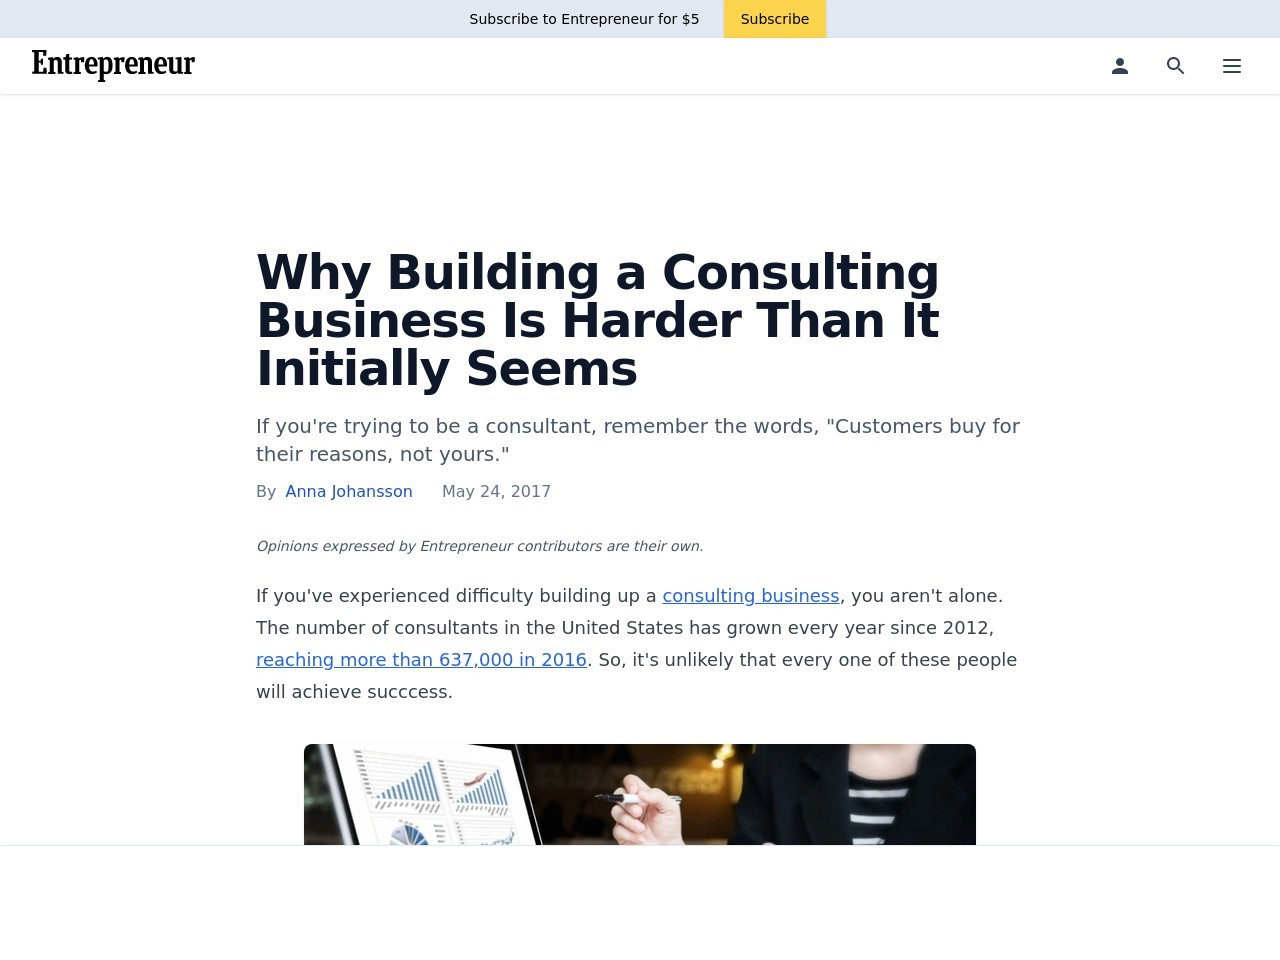 Why Building a Consulting Business Is Harder Than It Initially Seems